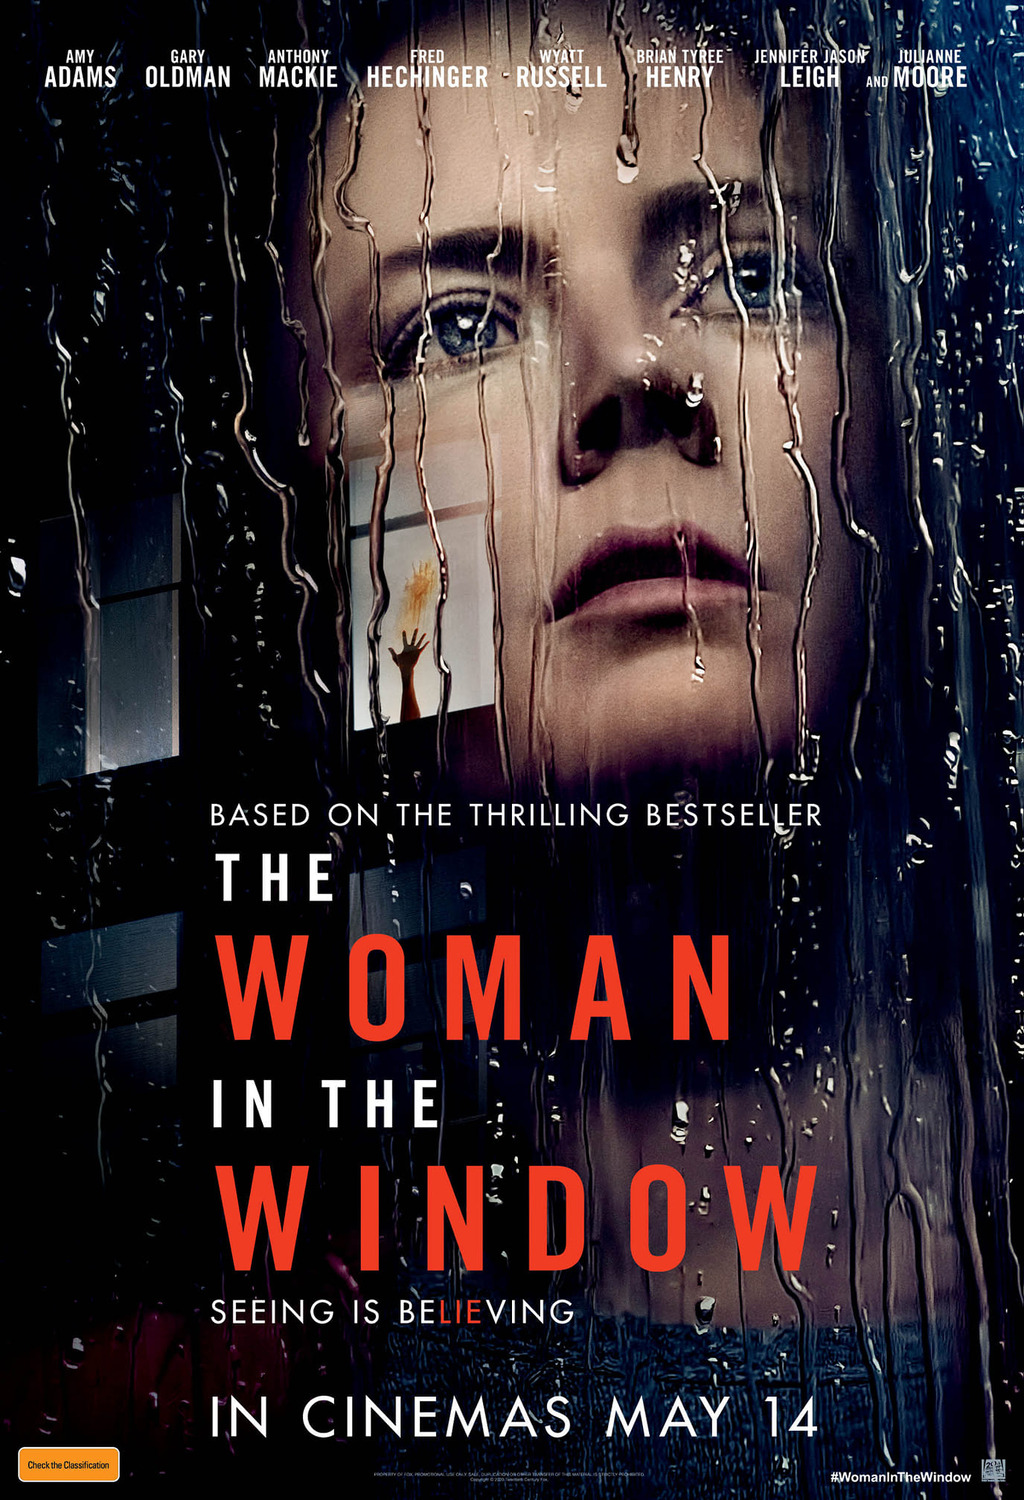 Trailer for The Woman in the Window with Amy Adams, Julianne Moore and Gary Oldman